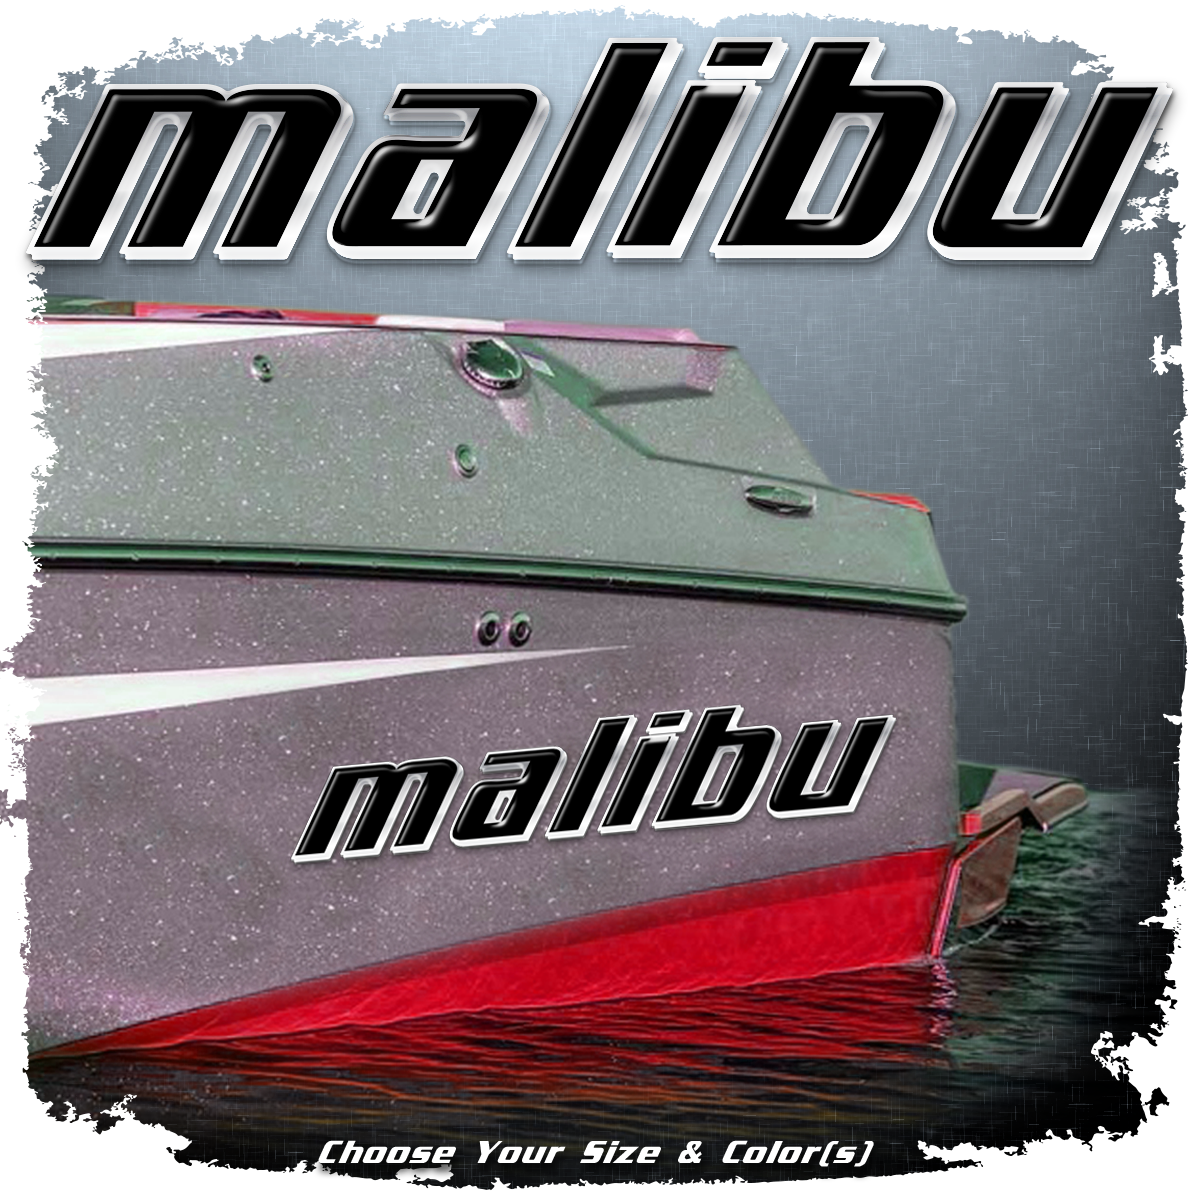 Domed Malibu Decal, Old Logo, Choose Your Size & Color (1 Decal Included)